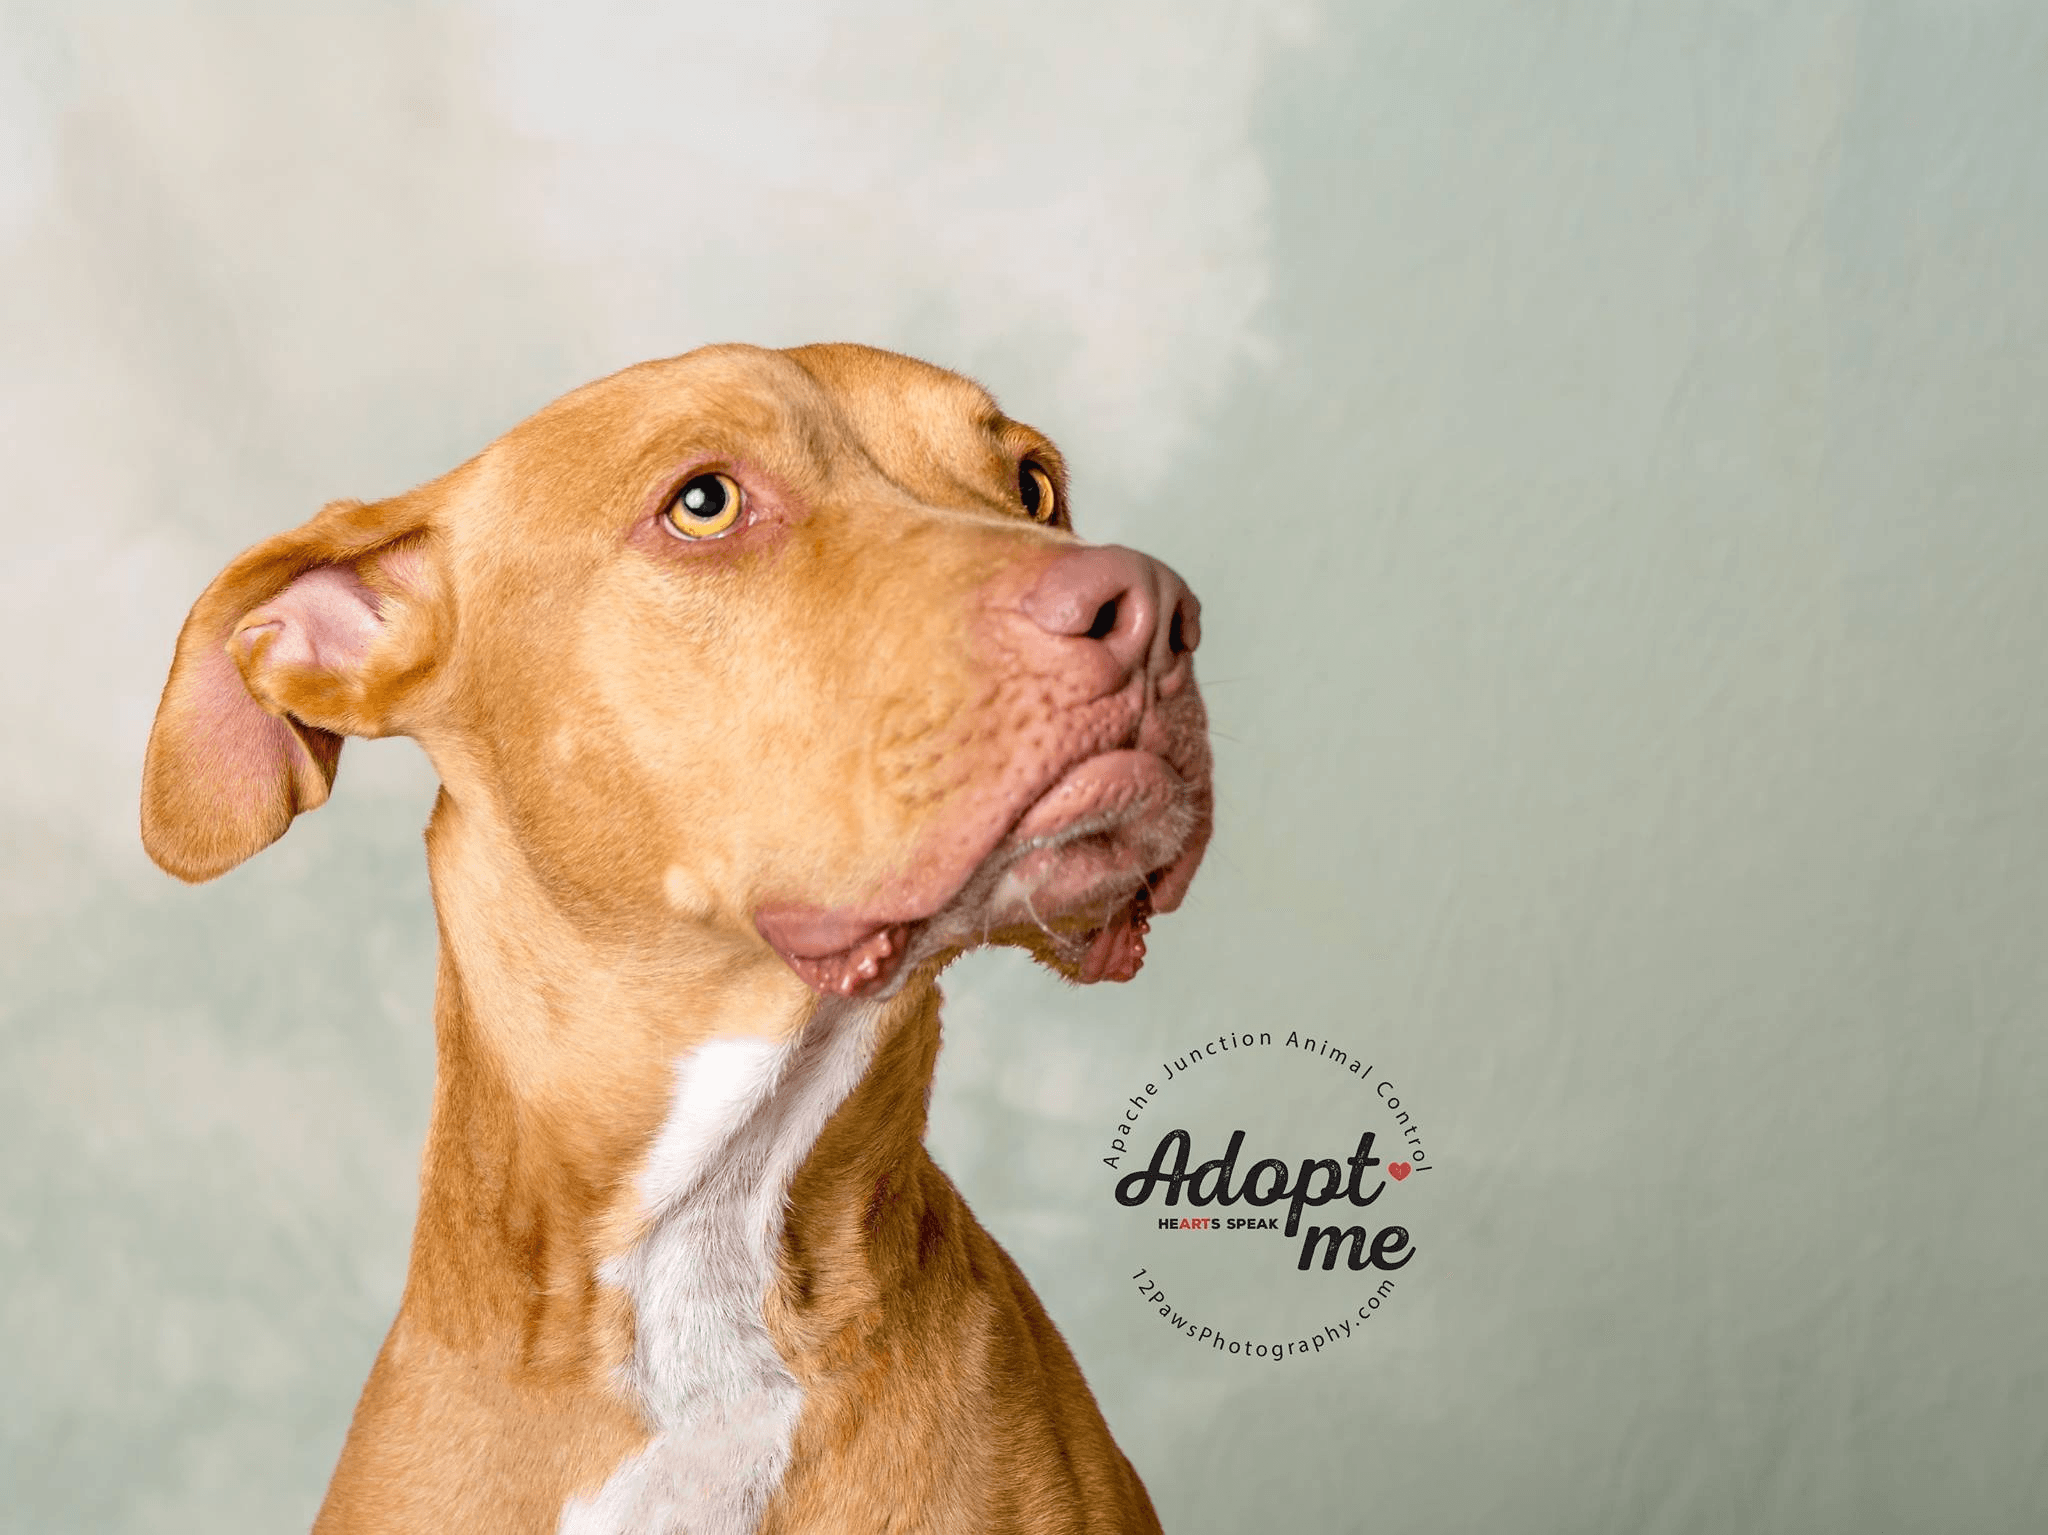 Marley is a 1 year old pit bul that has the best facial expressions. He is an active dog that needs